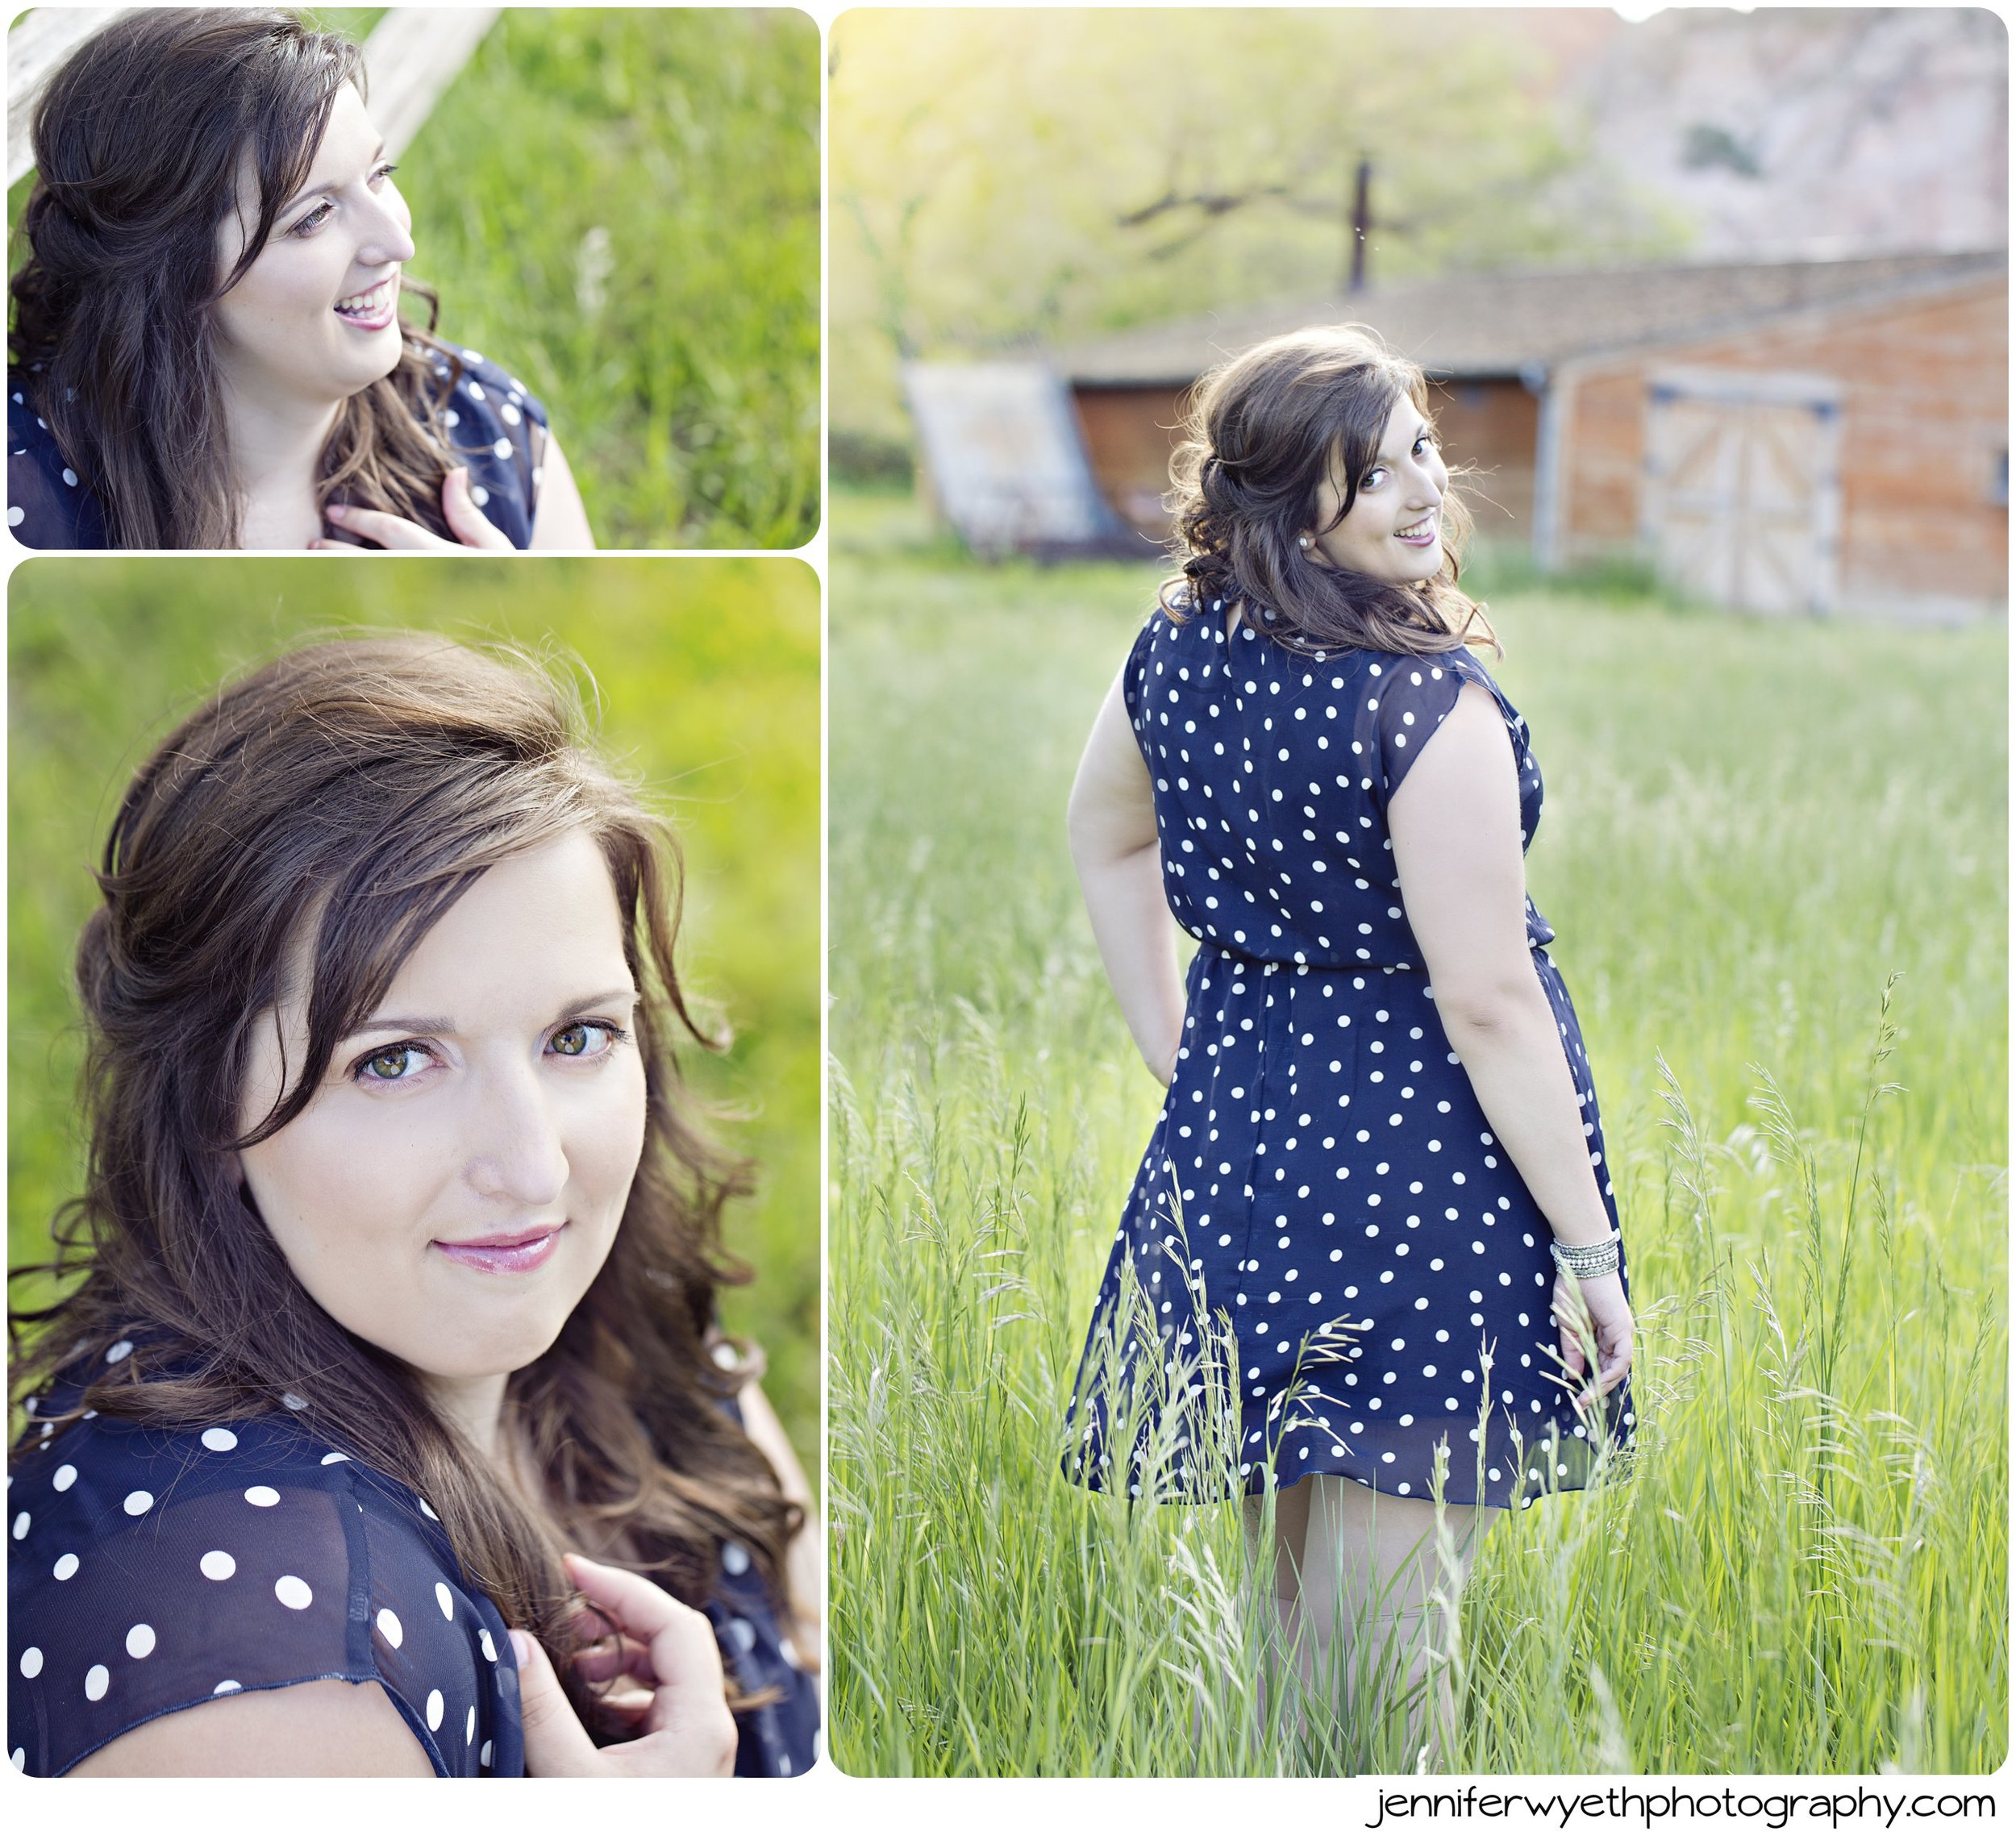 young woman acts flirty with the camera in a blue polka dot dress